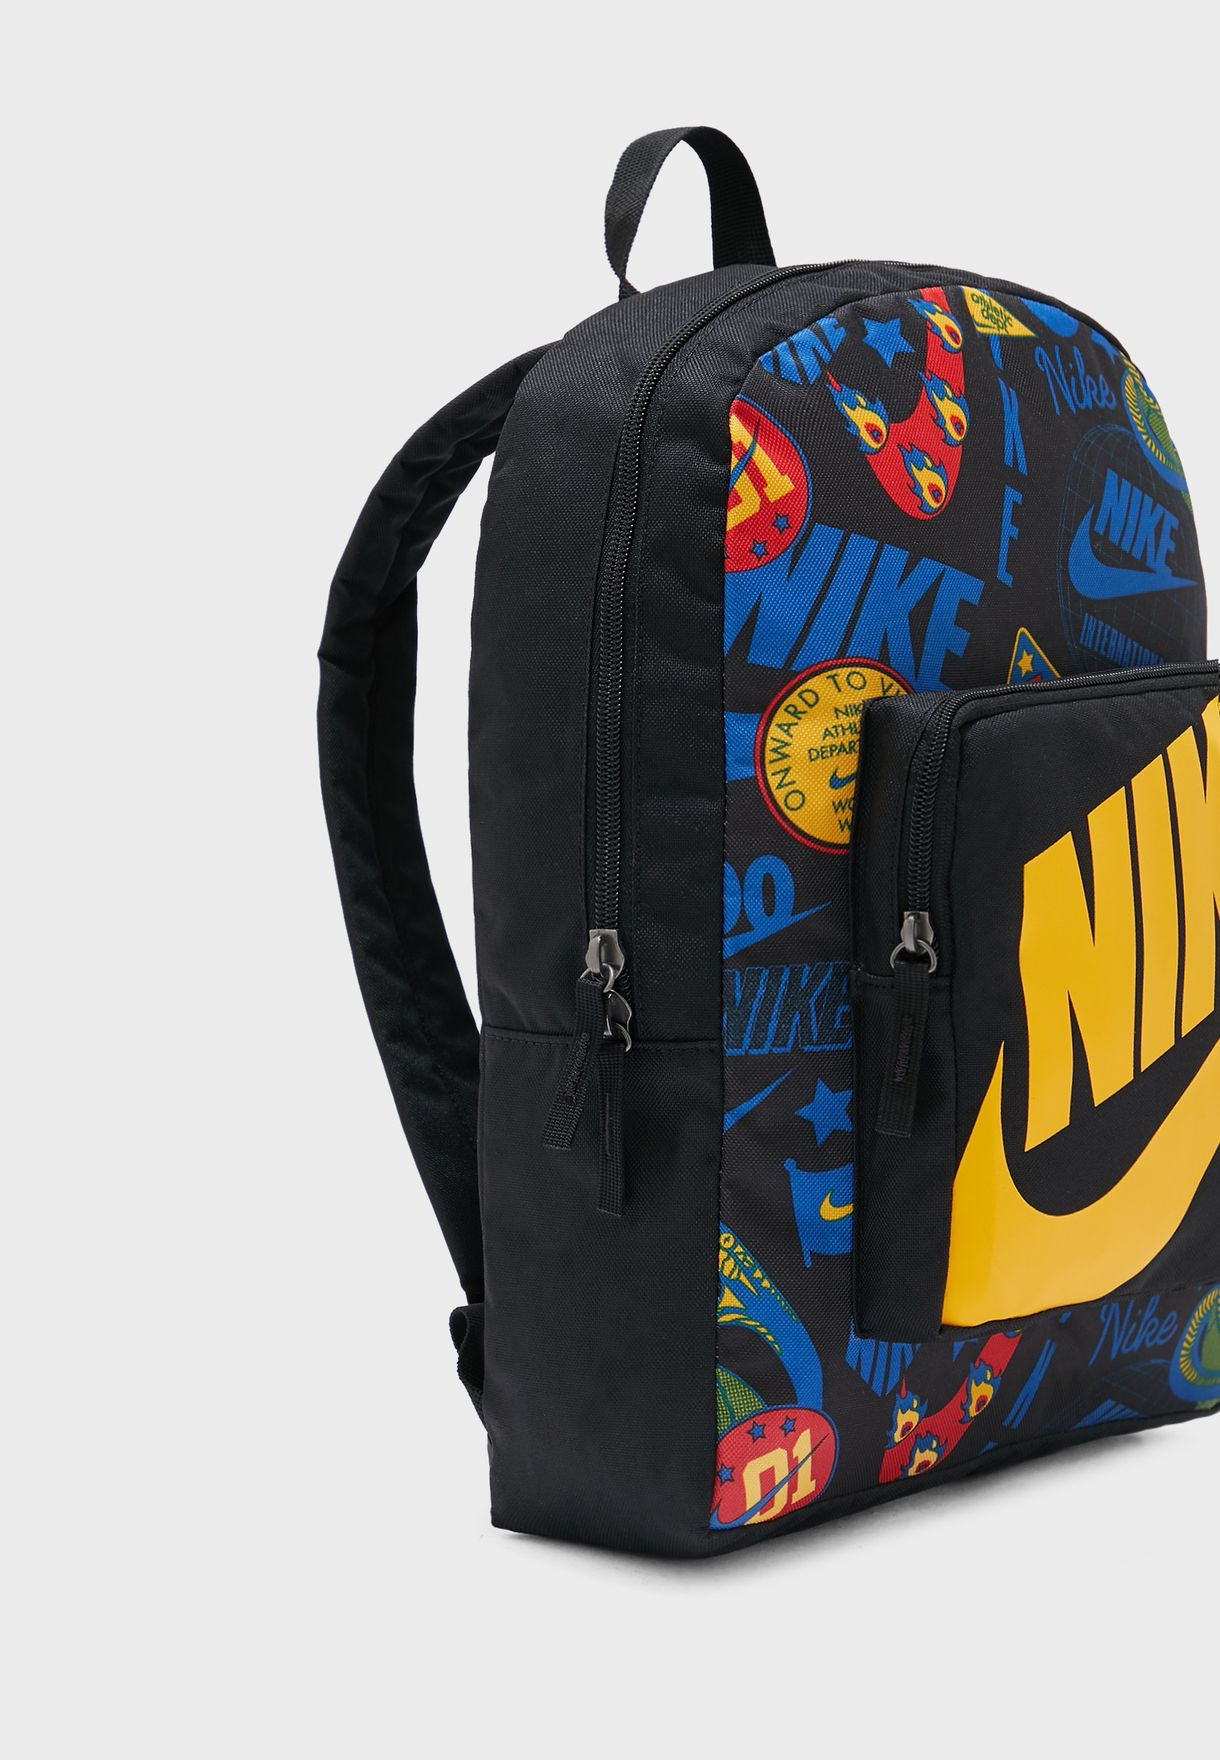 Arroyo golondrina Estallar  Buy Nike prints Classic AOP Backpack for Kids in MENA, Worldwide |  BA5995-013